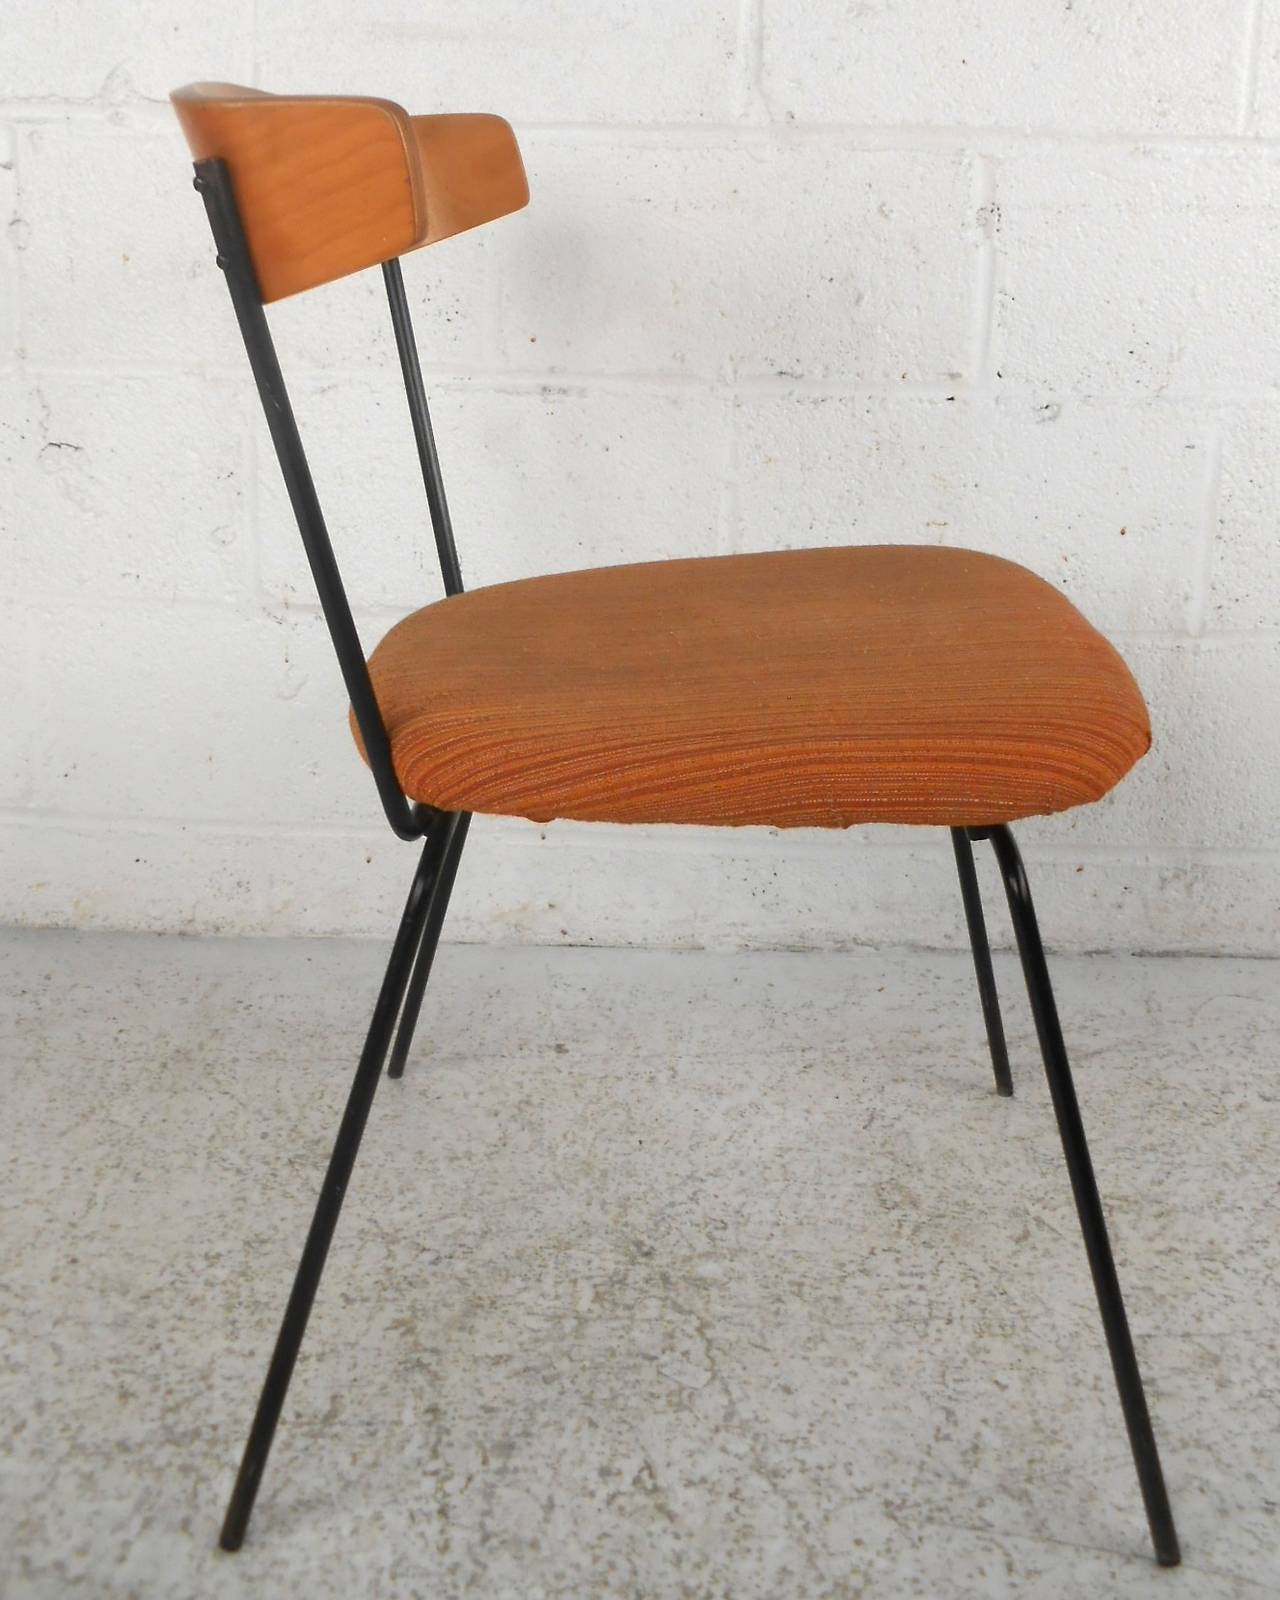 bentwood dining chair plastic chairs covers mid century modern paul mccobb 1535 style